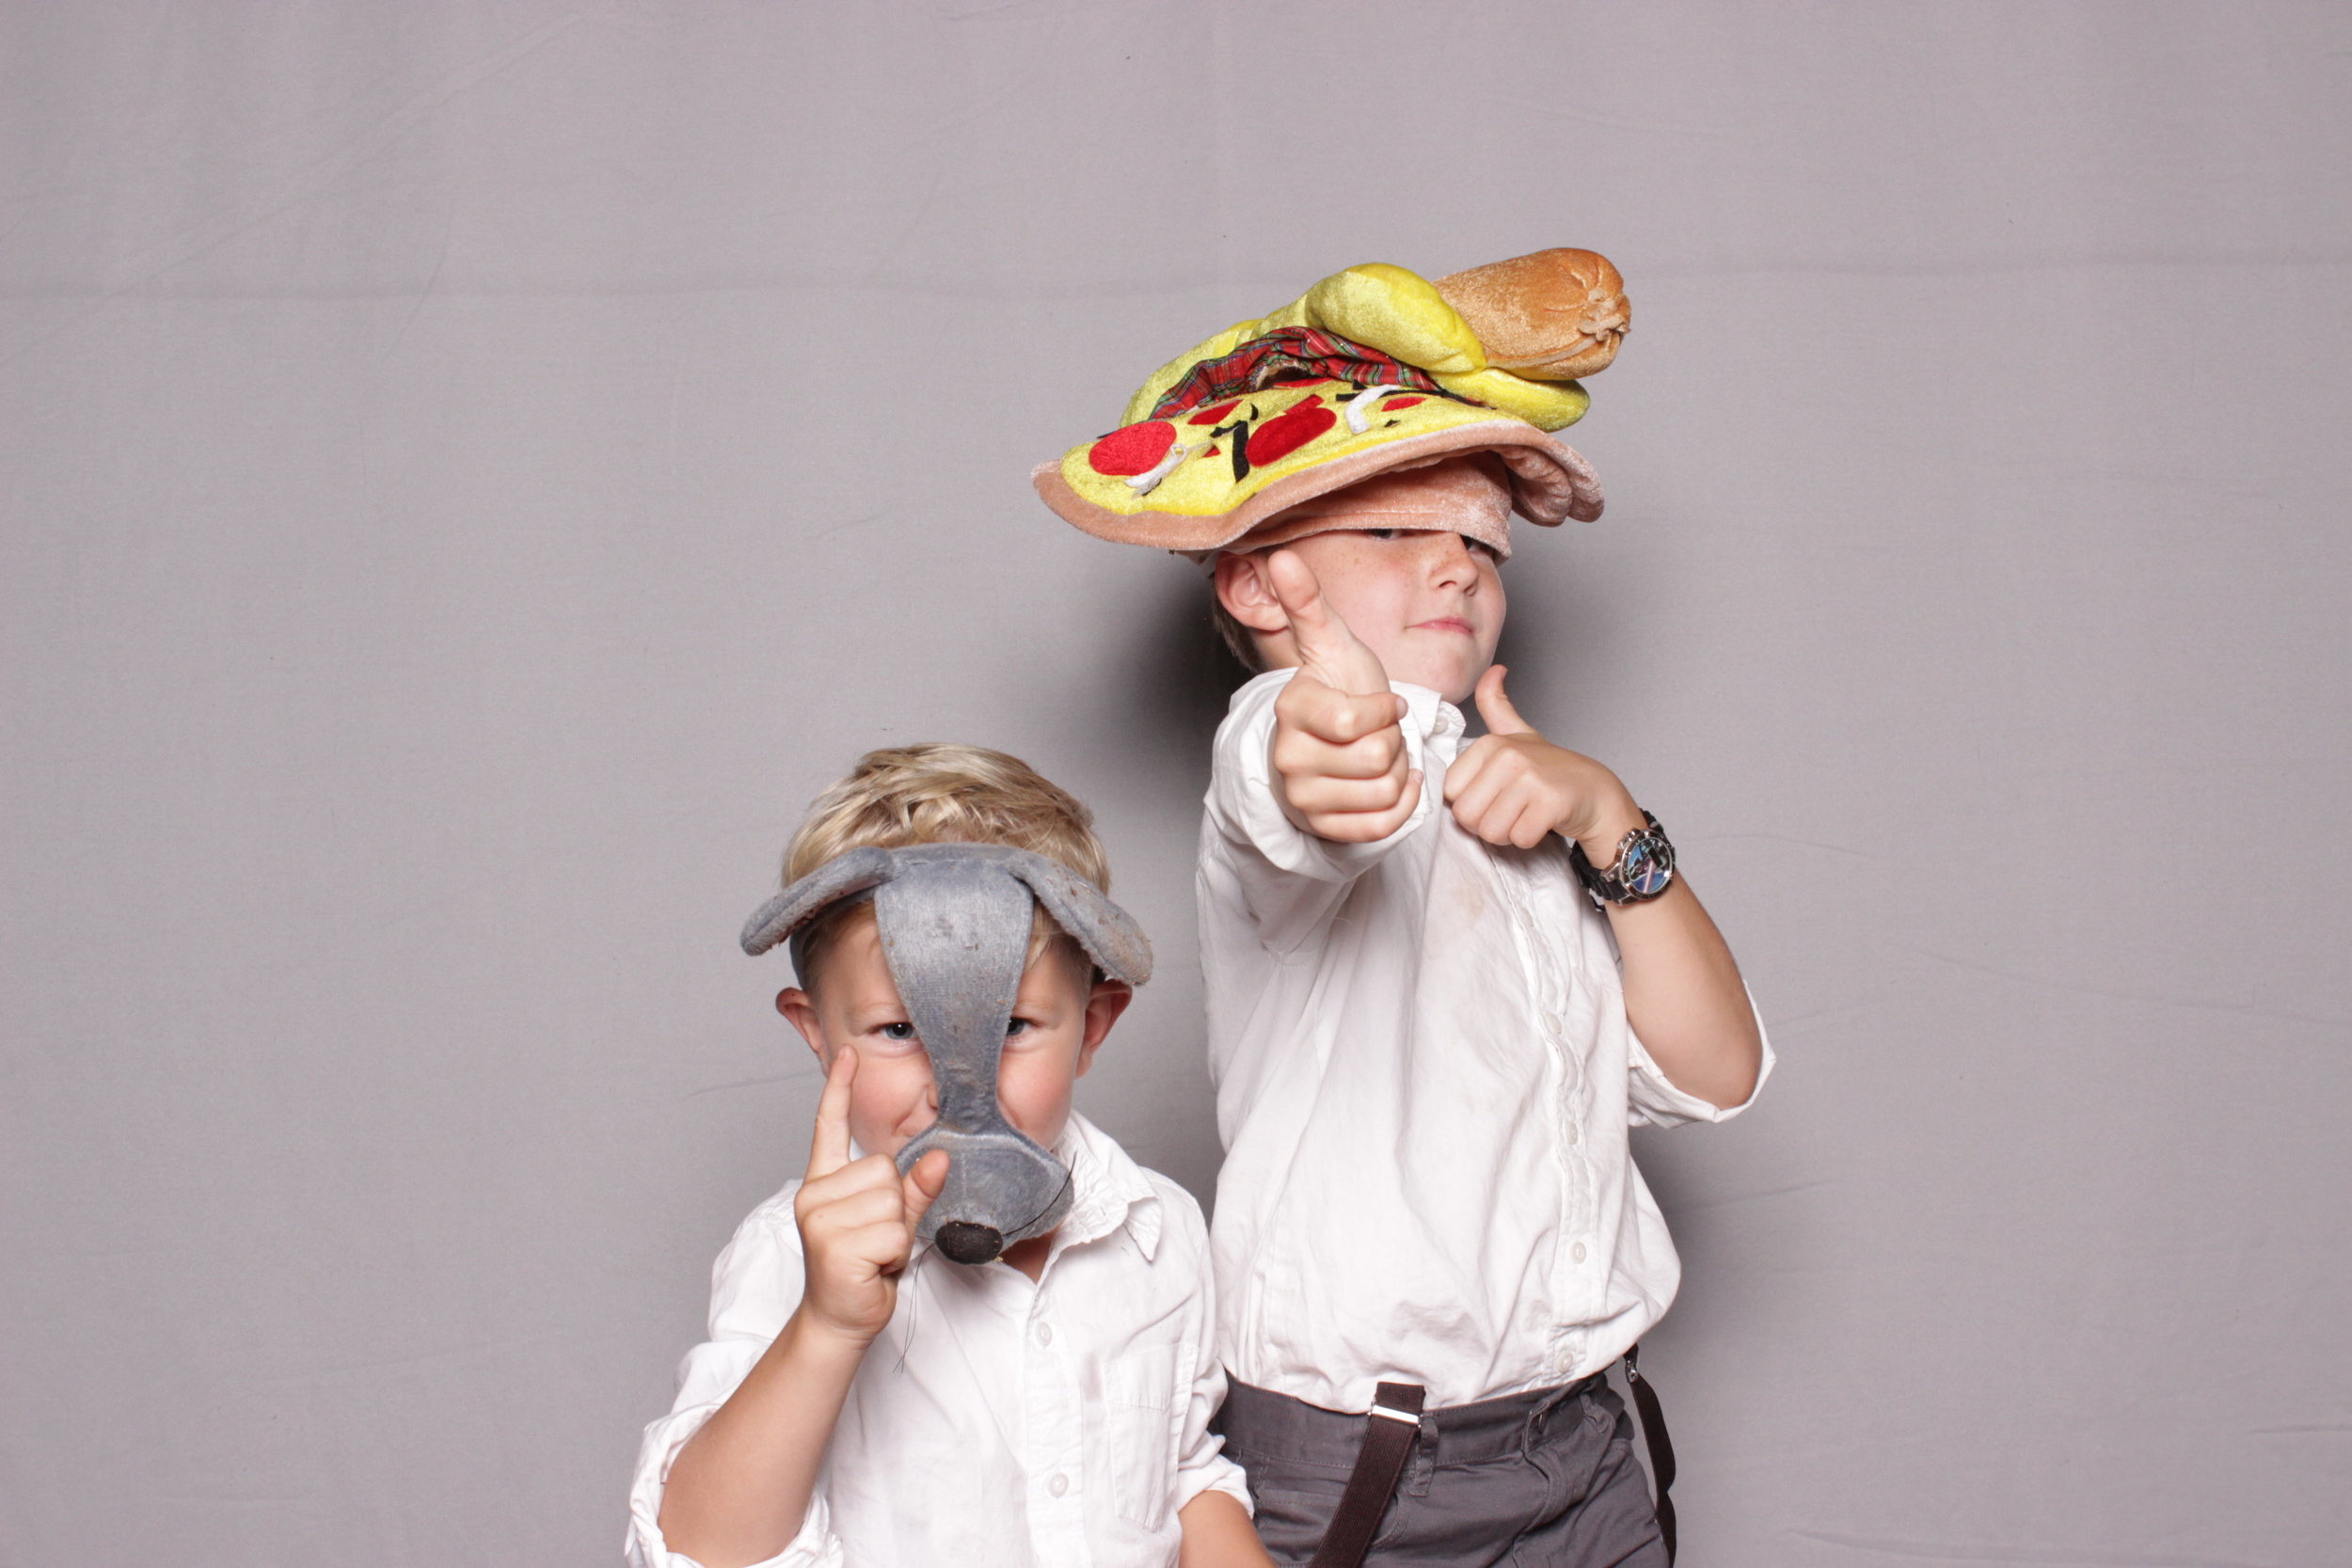 photo-booth-rental-chico-california-gale-vineyards-wedding-cool-kids